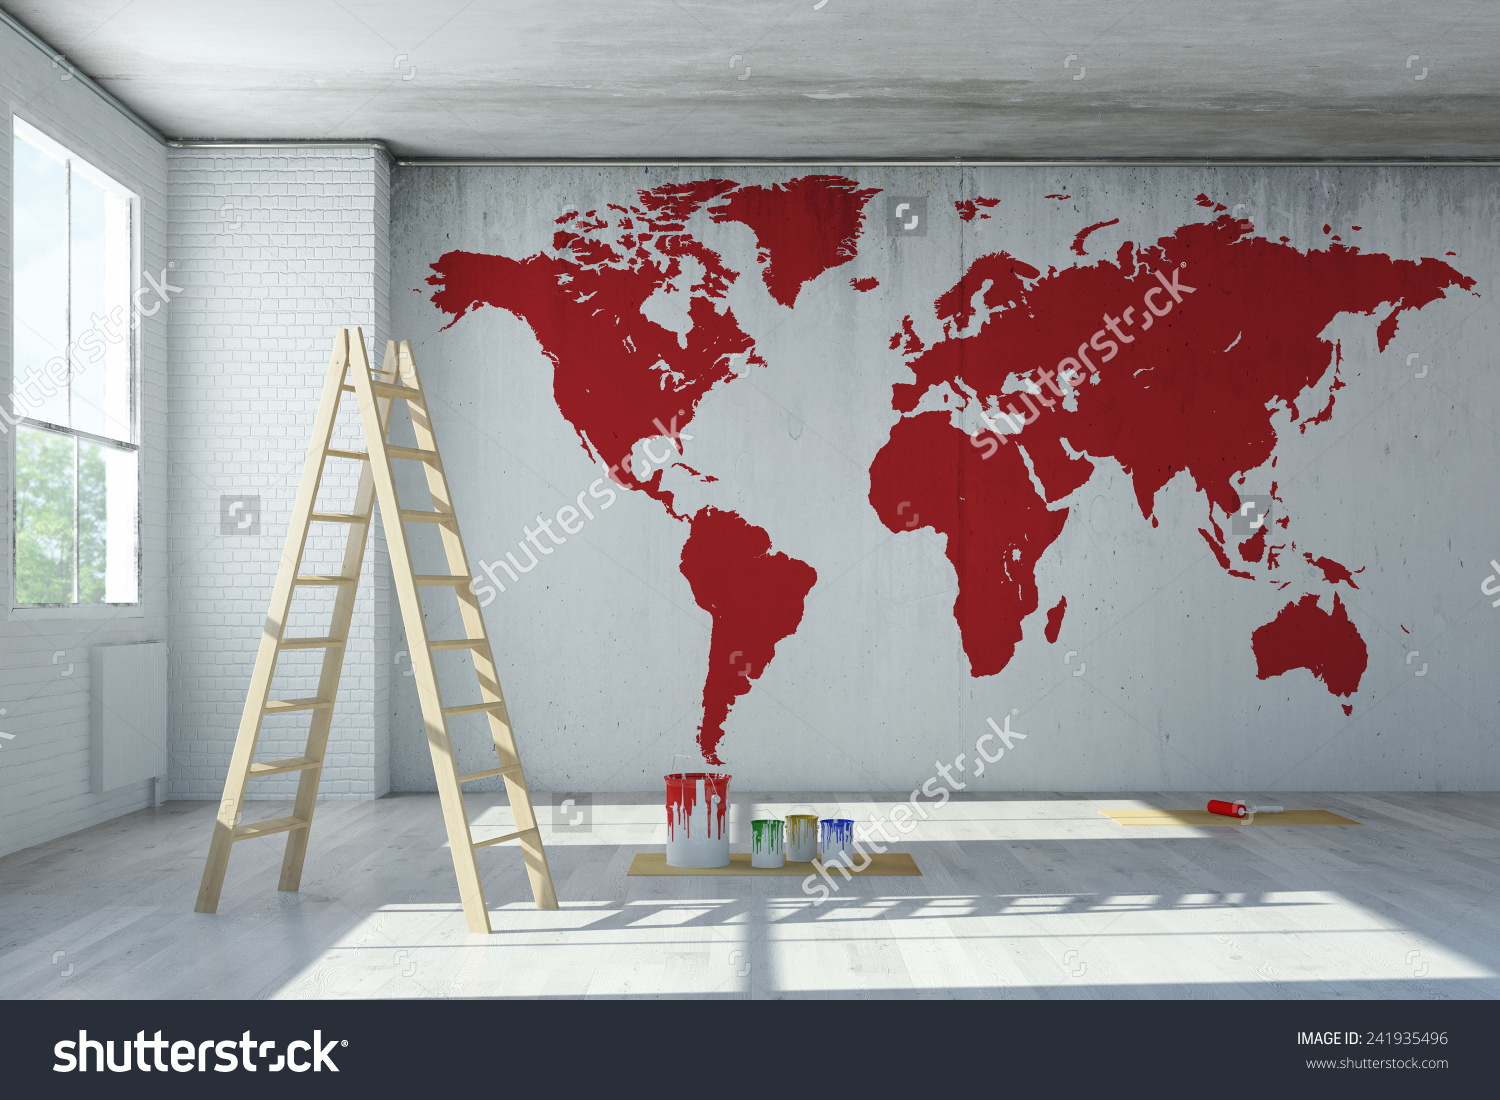 Big Red World Map Painted On Stock Illustration 241935496.